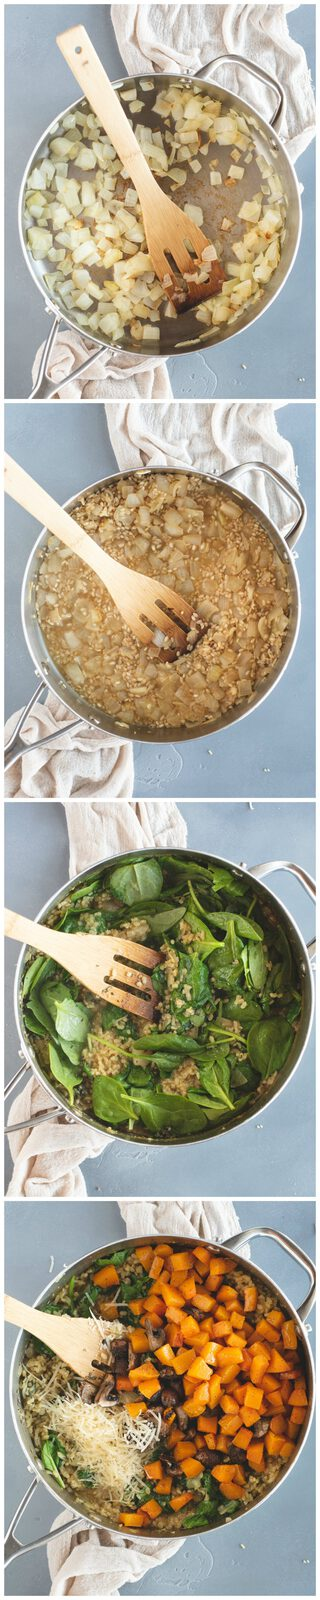 healthy brown rice risotto process steps